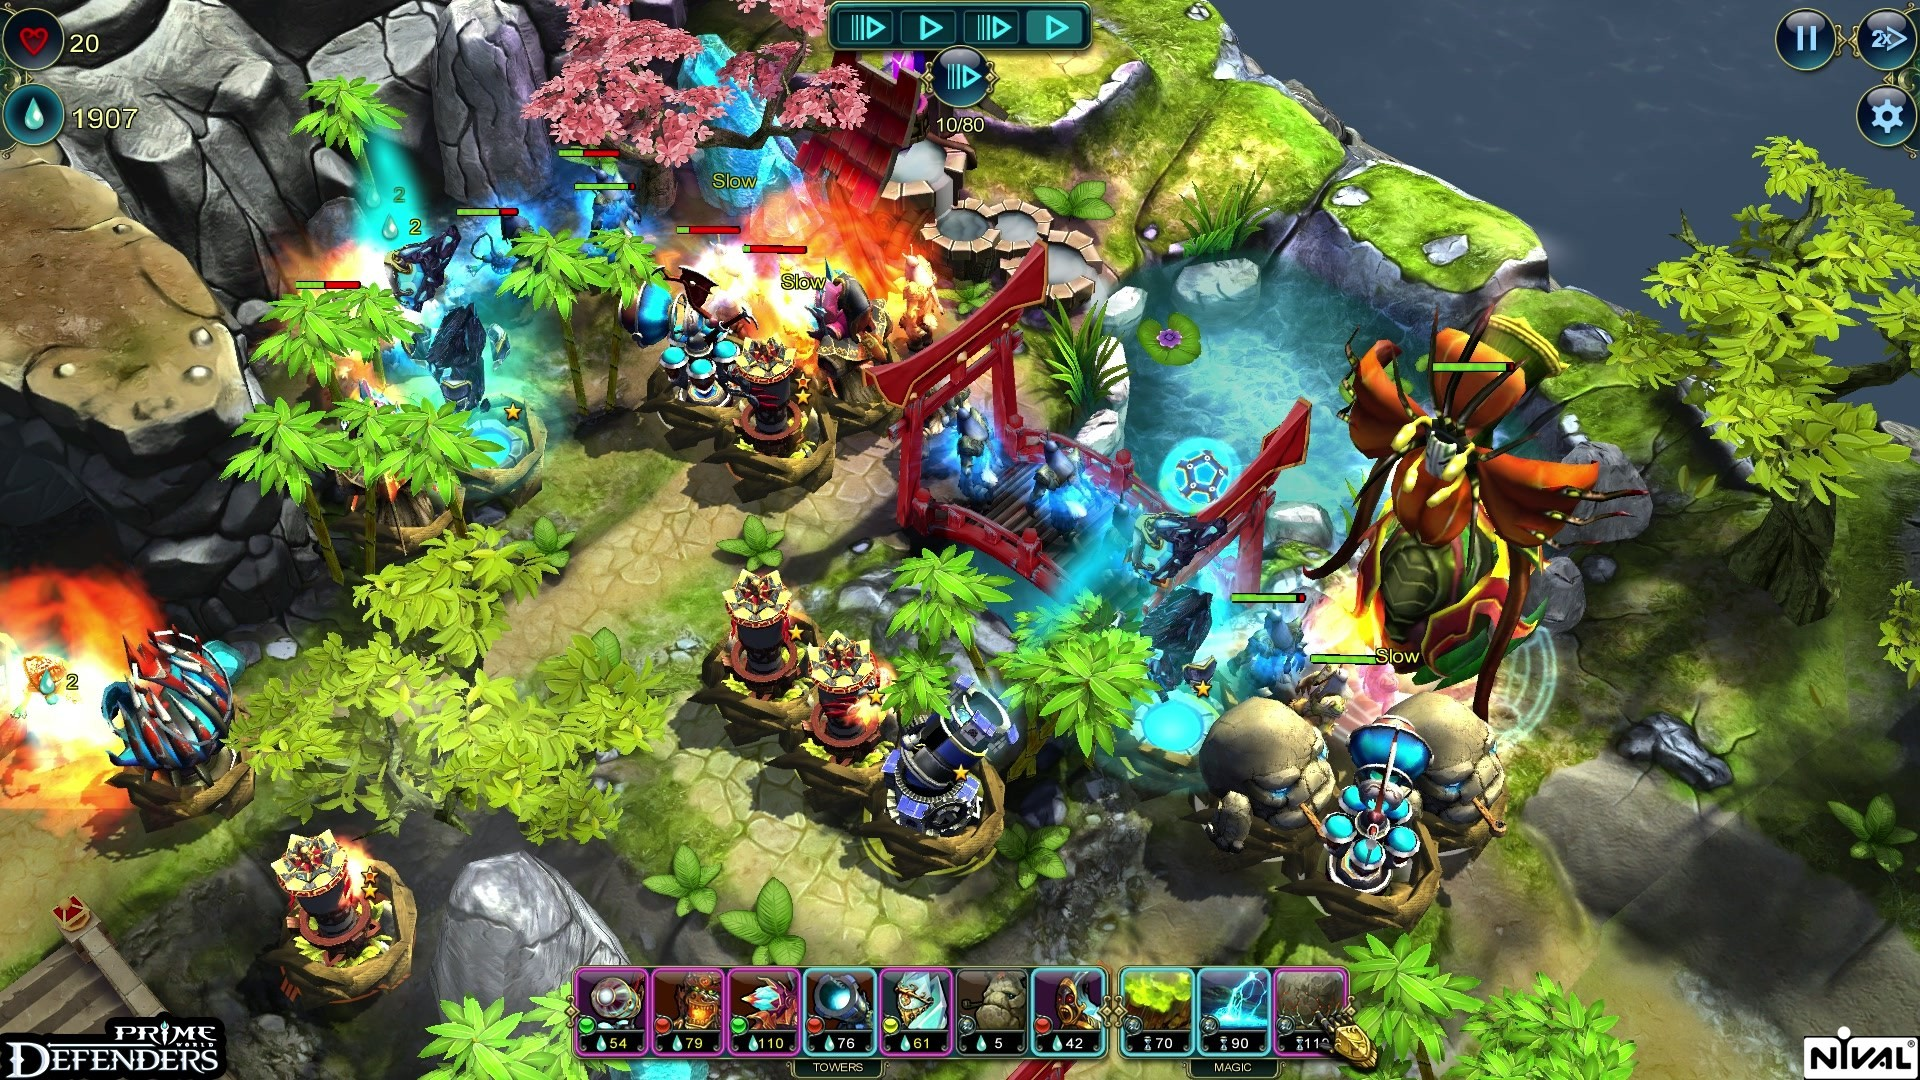 Top 10 Tower Defense Games For Mobile Geektyrant